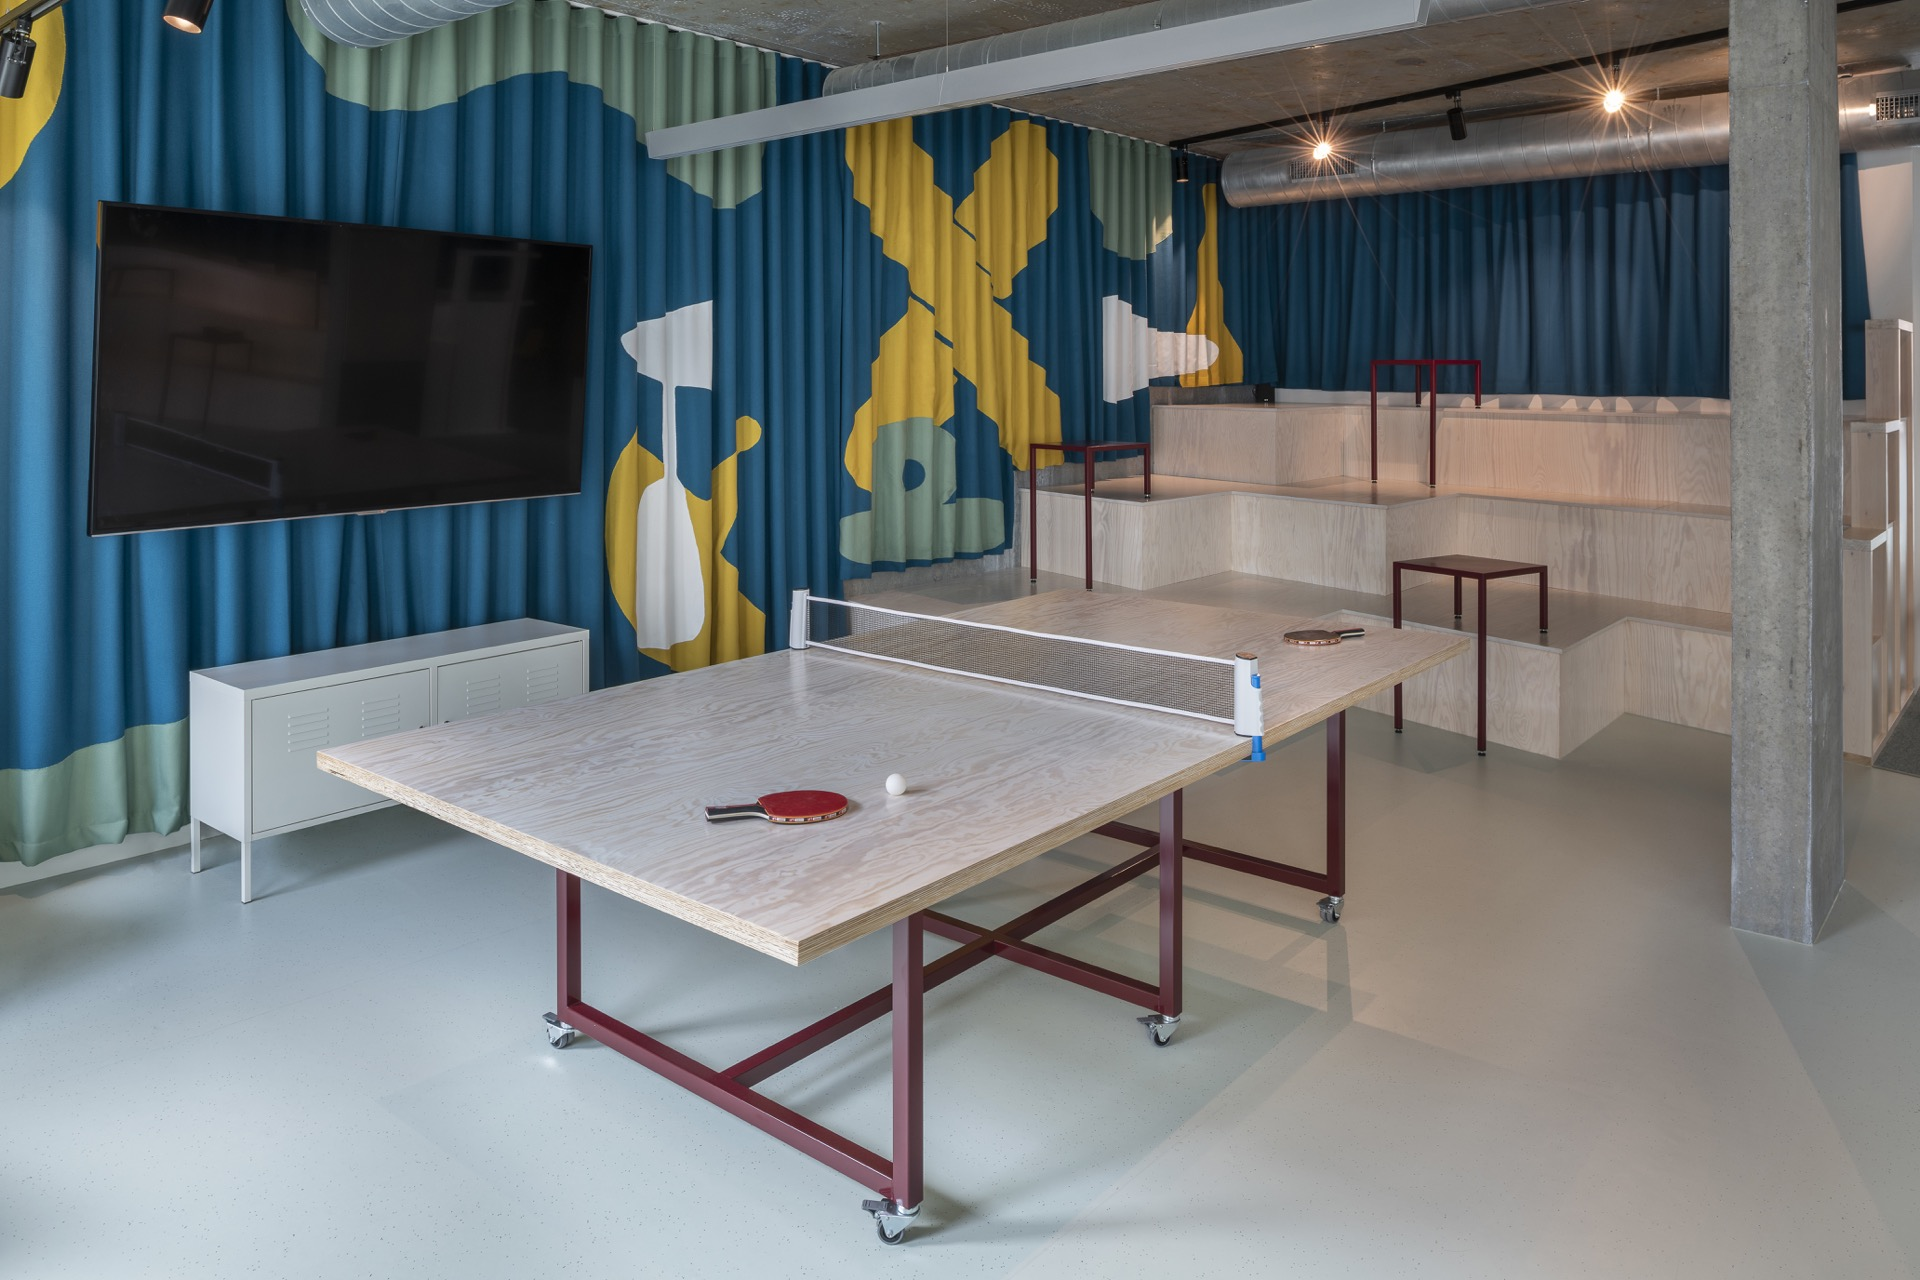 accuRx Office - Table tennis table